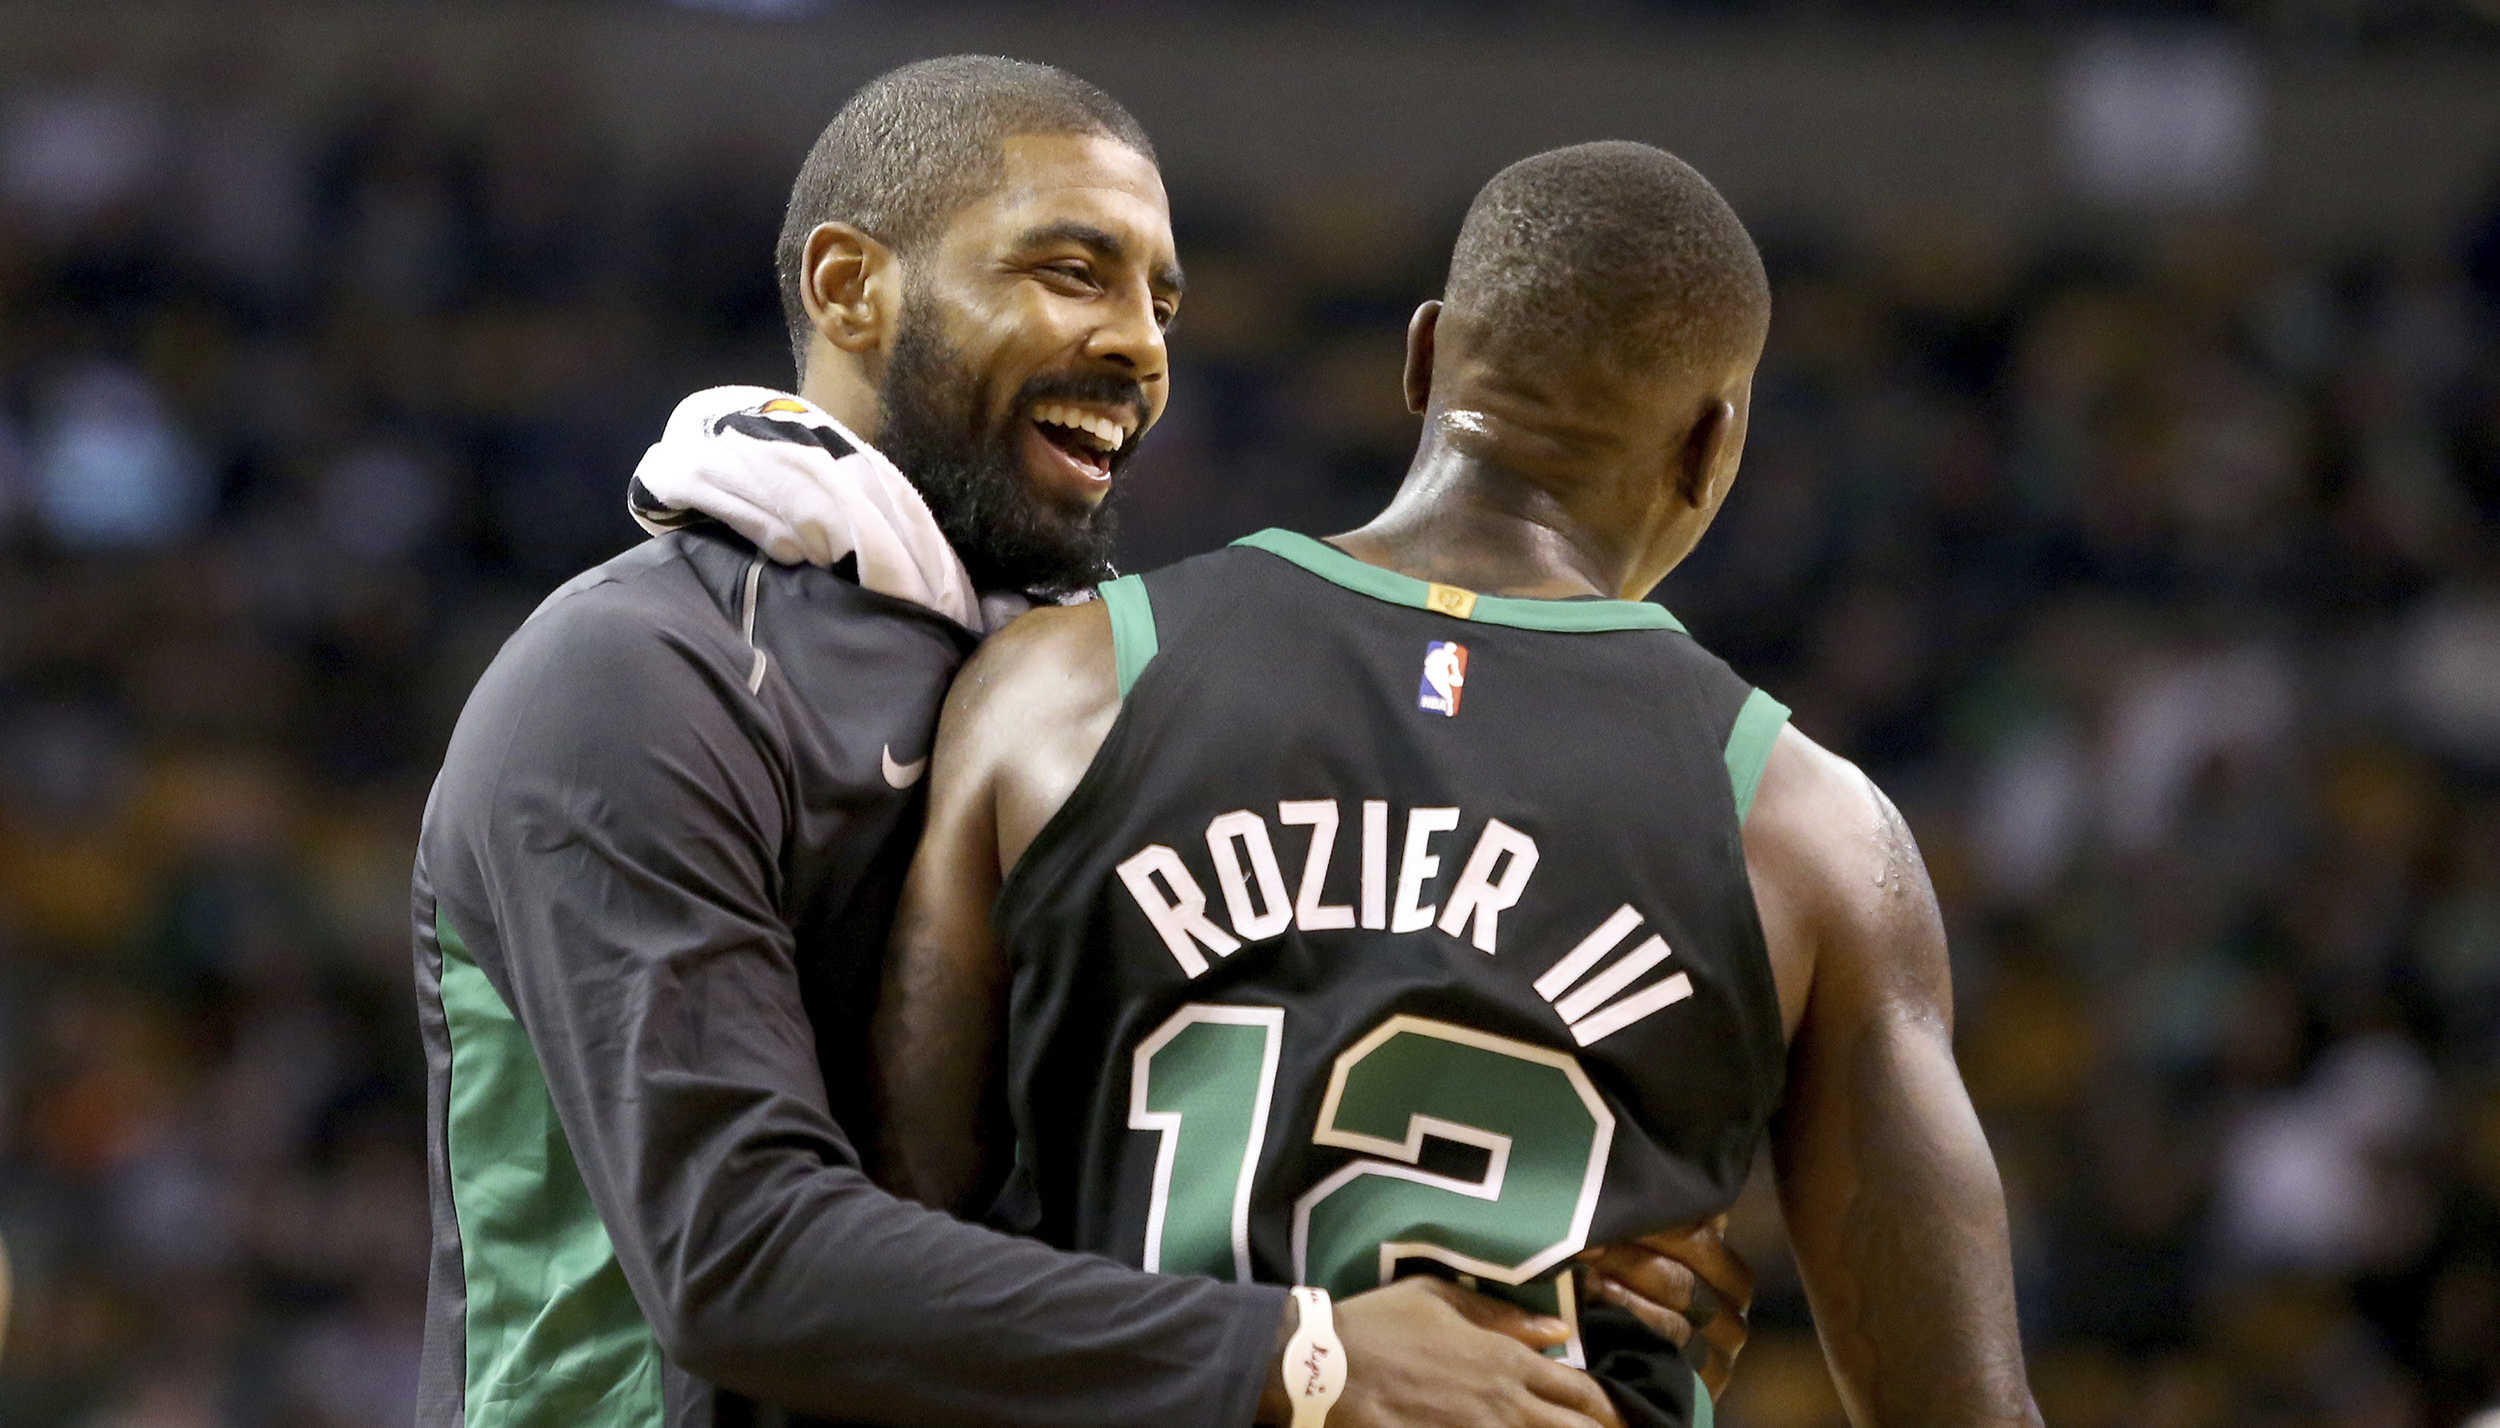 Terry-rozier-kyrie-irving